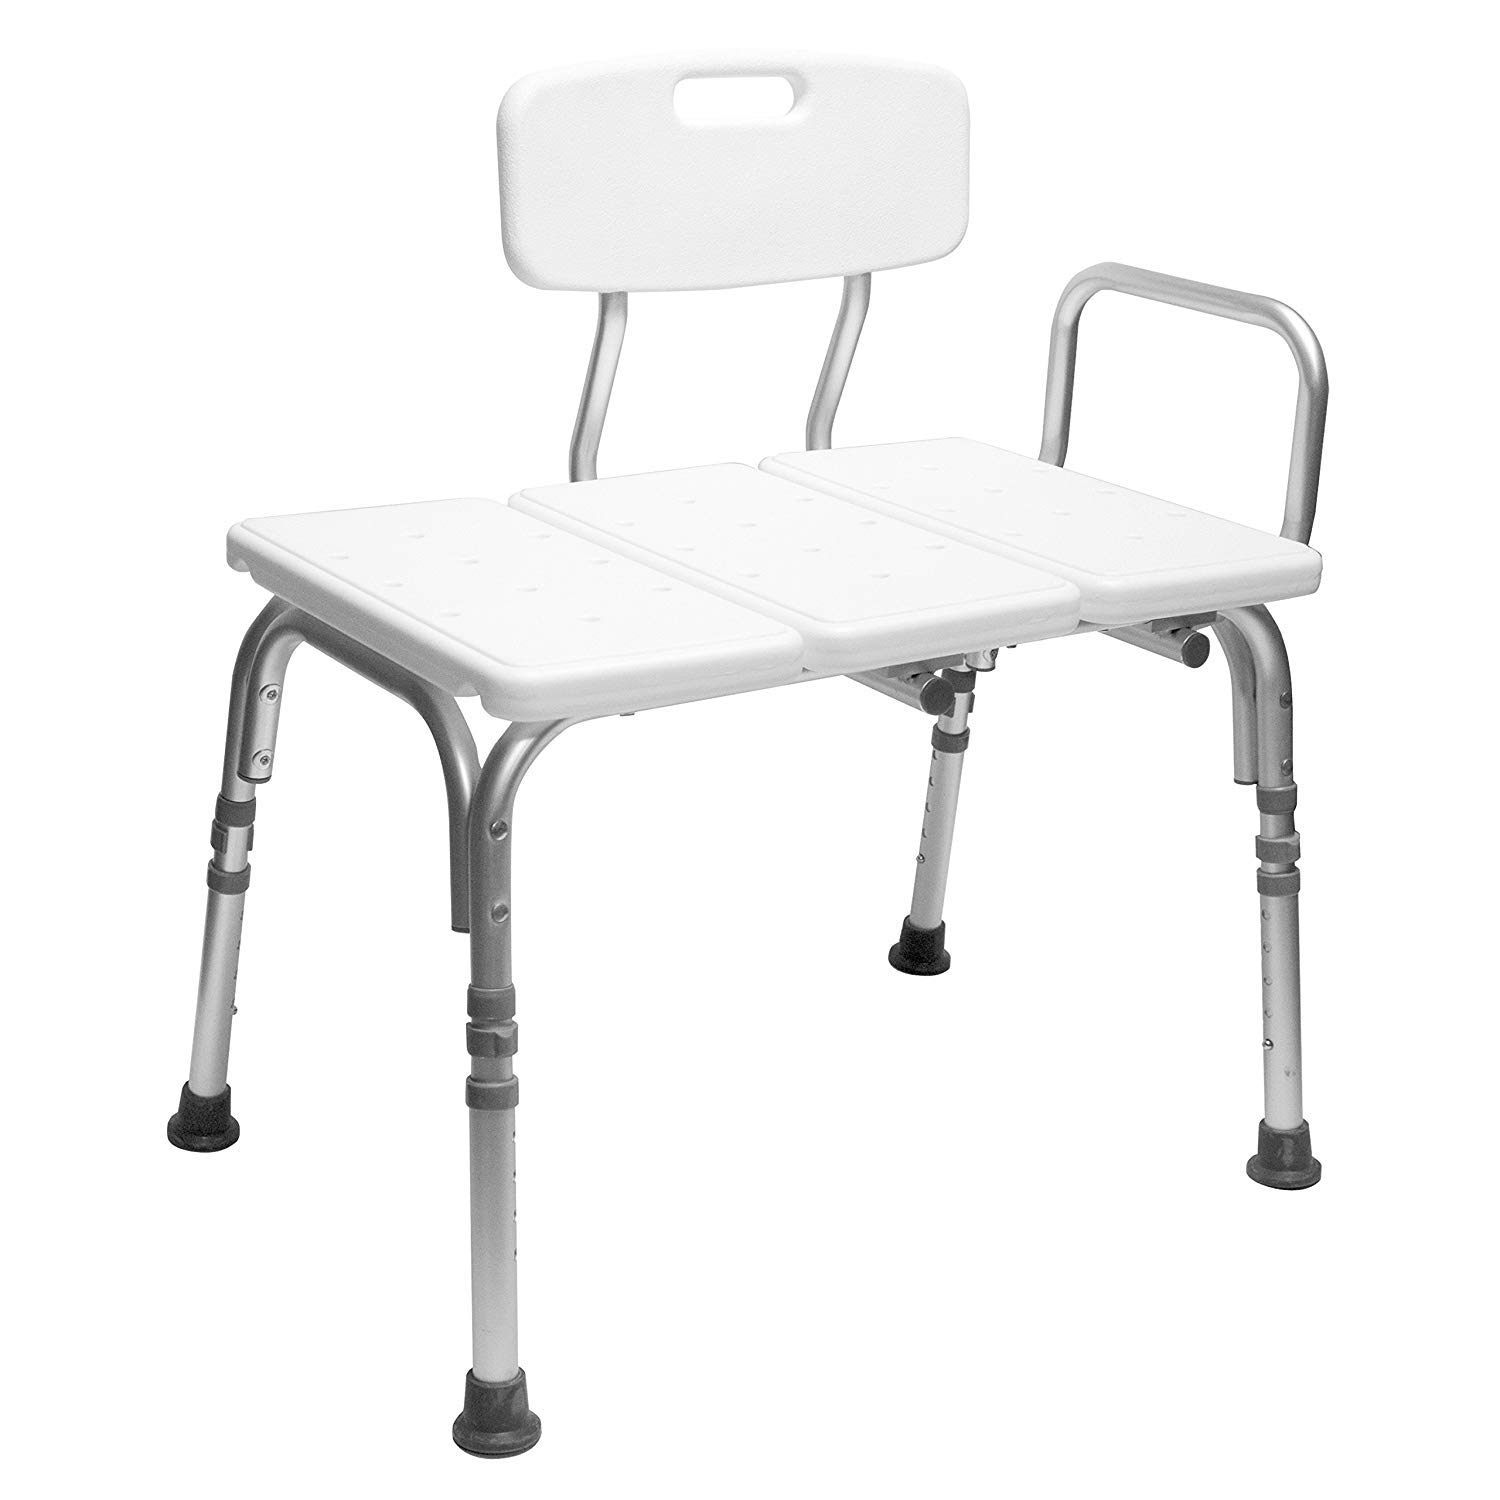 Carex Tub Transfer Bench - Shower Chair Transfer Bench with Height Adjustable Legs - Convertible to Right or Left Hand Entry